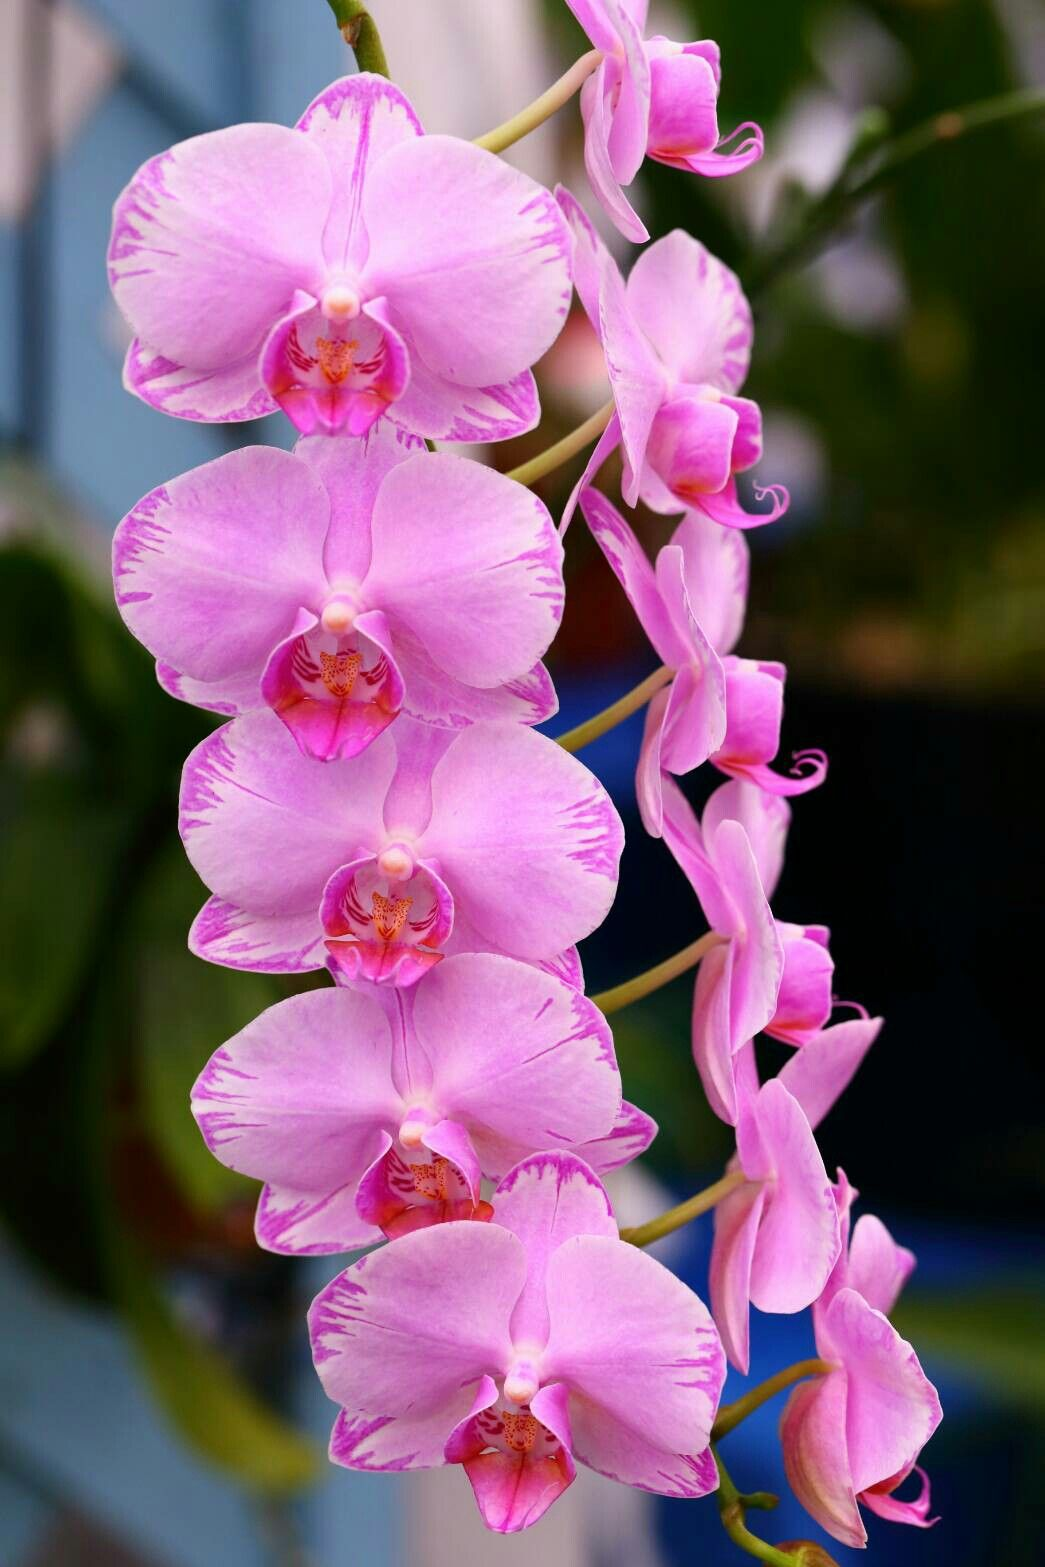 Pin by aurora aguirre on orquídea pinterest orchid flowers and